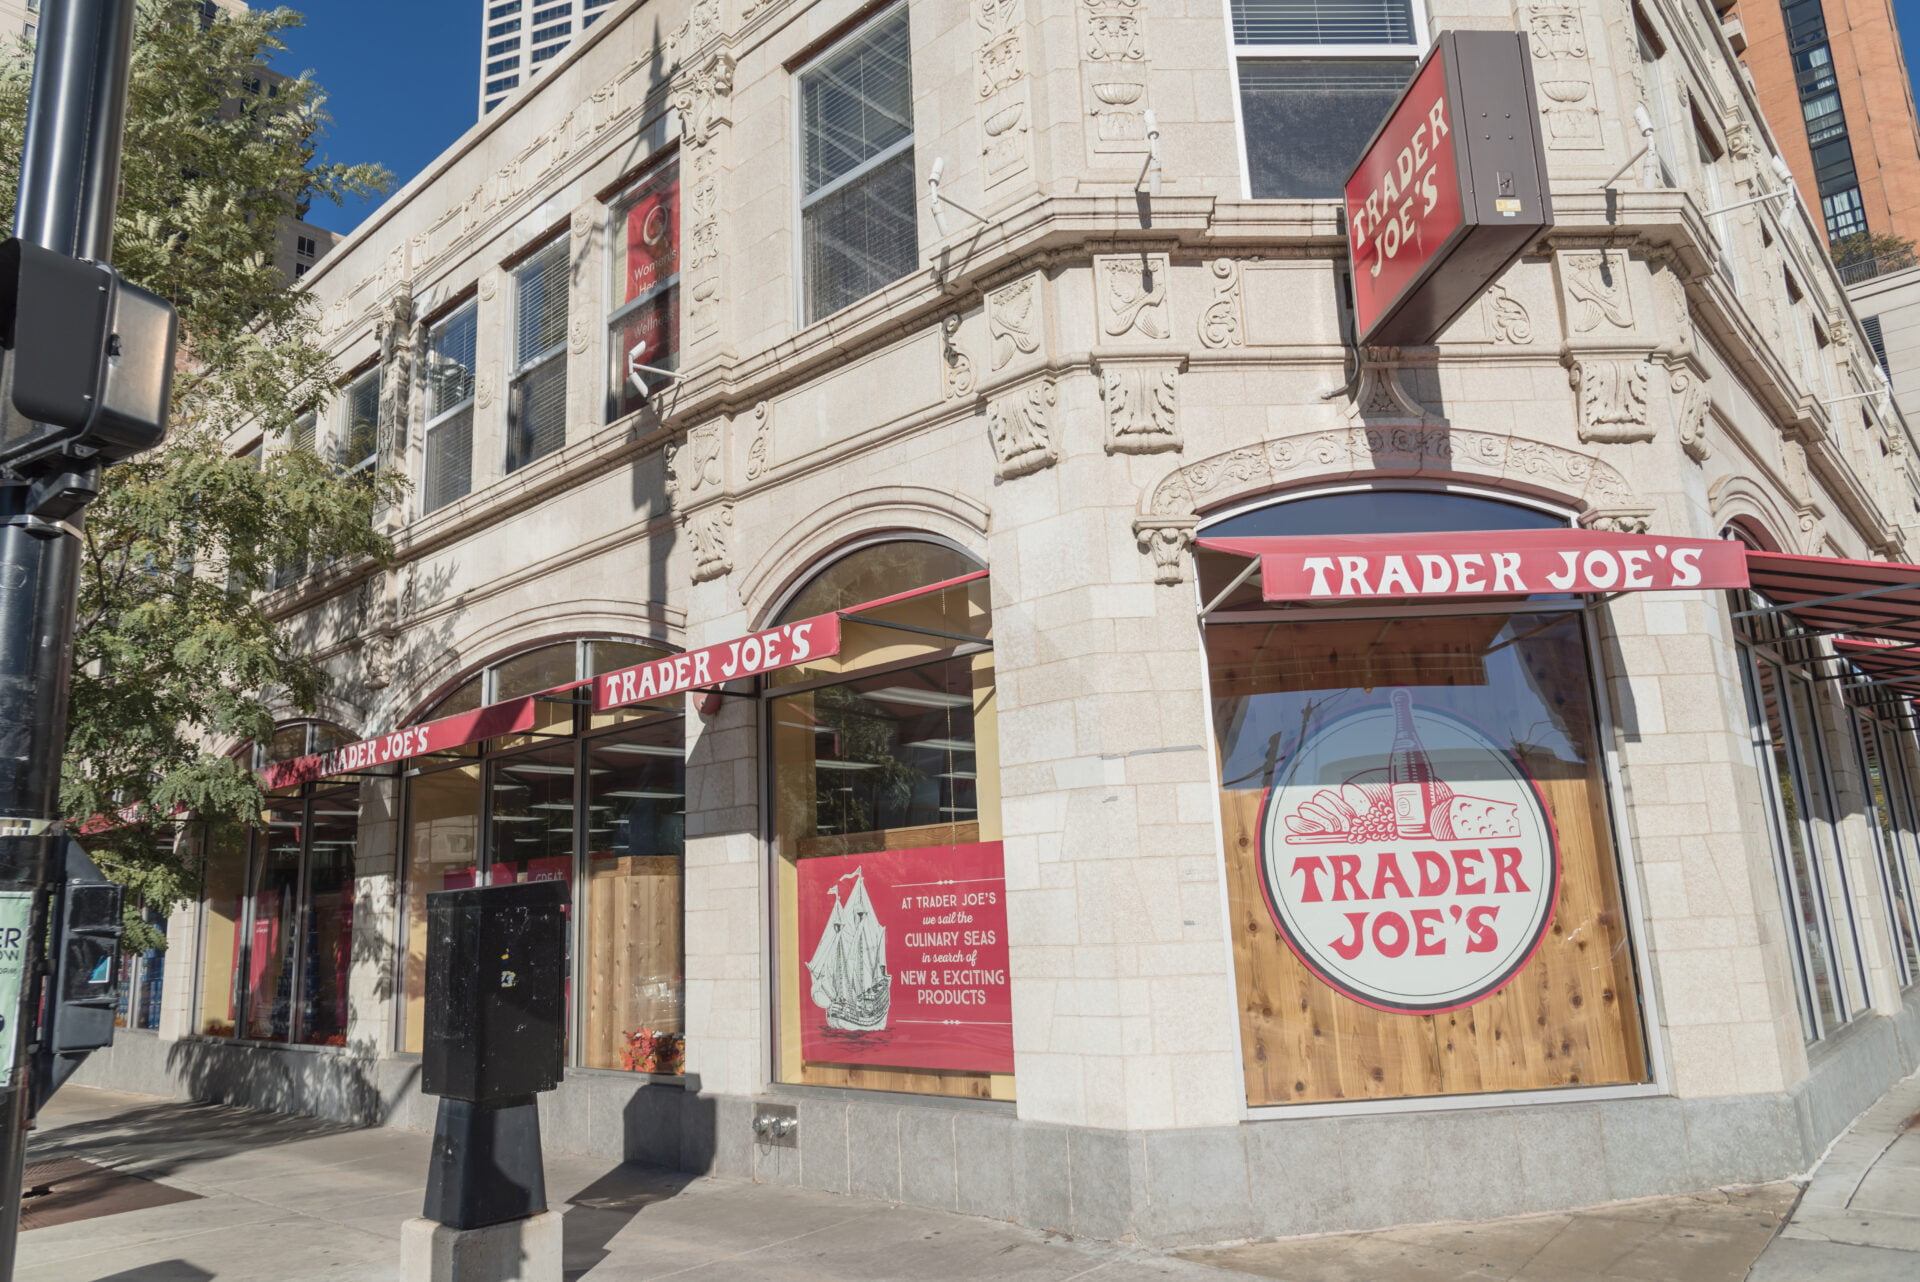 Trader joes in Chicago, Illinois